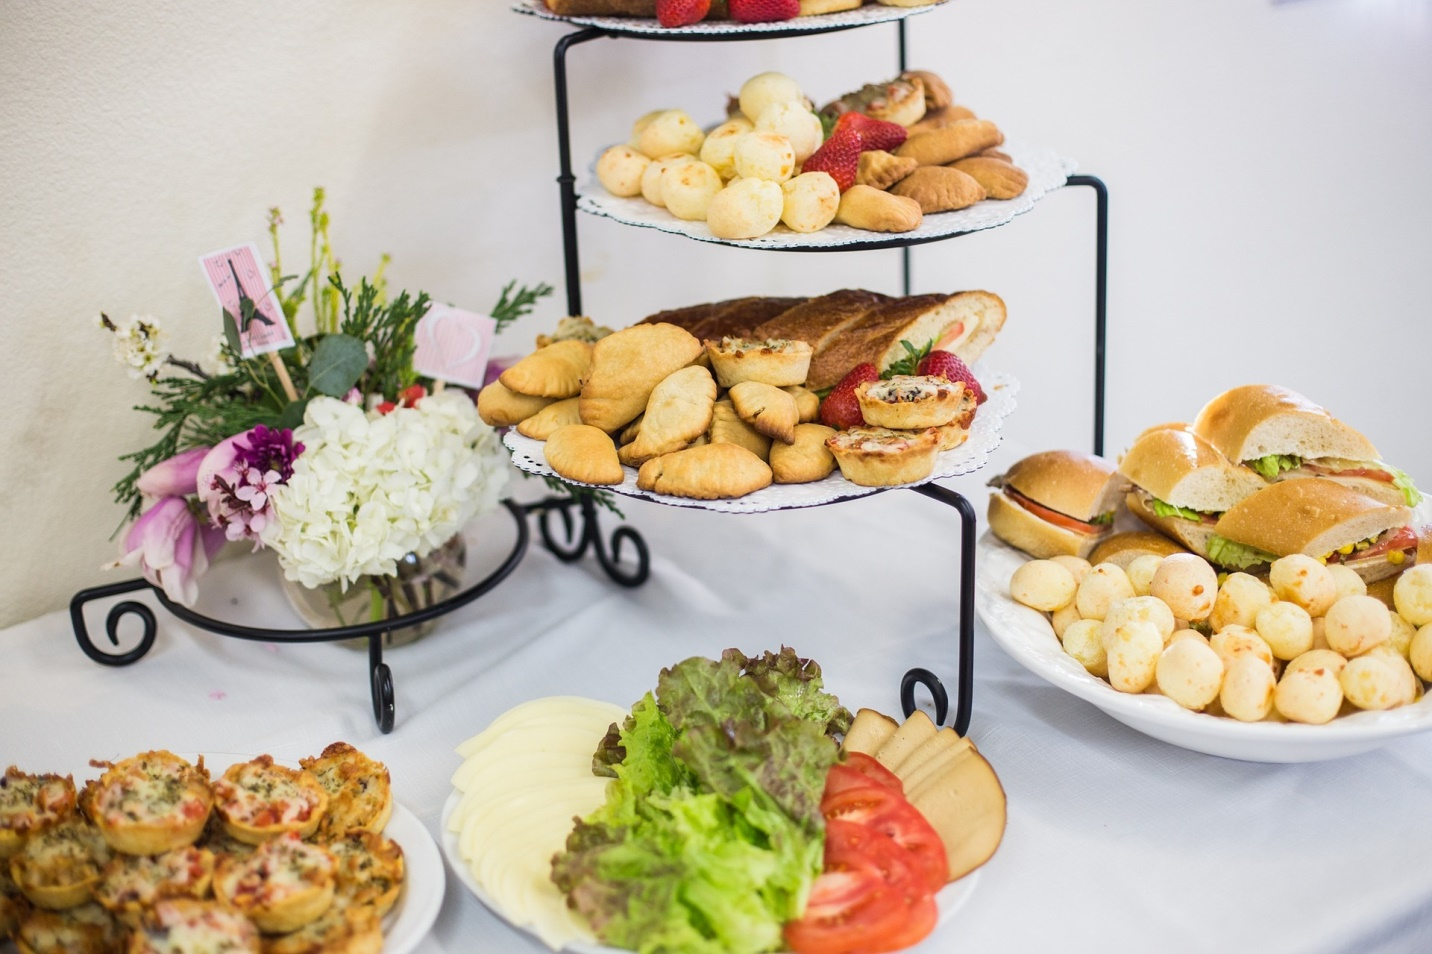 Choosing the Right Menu for Your Next Catered Event